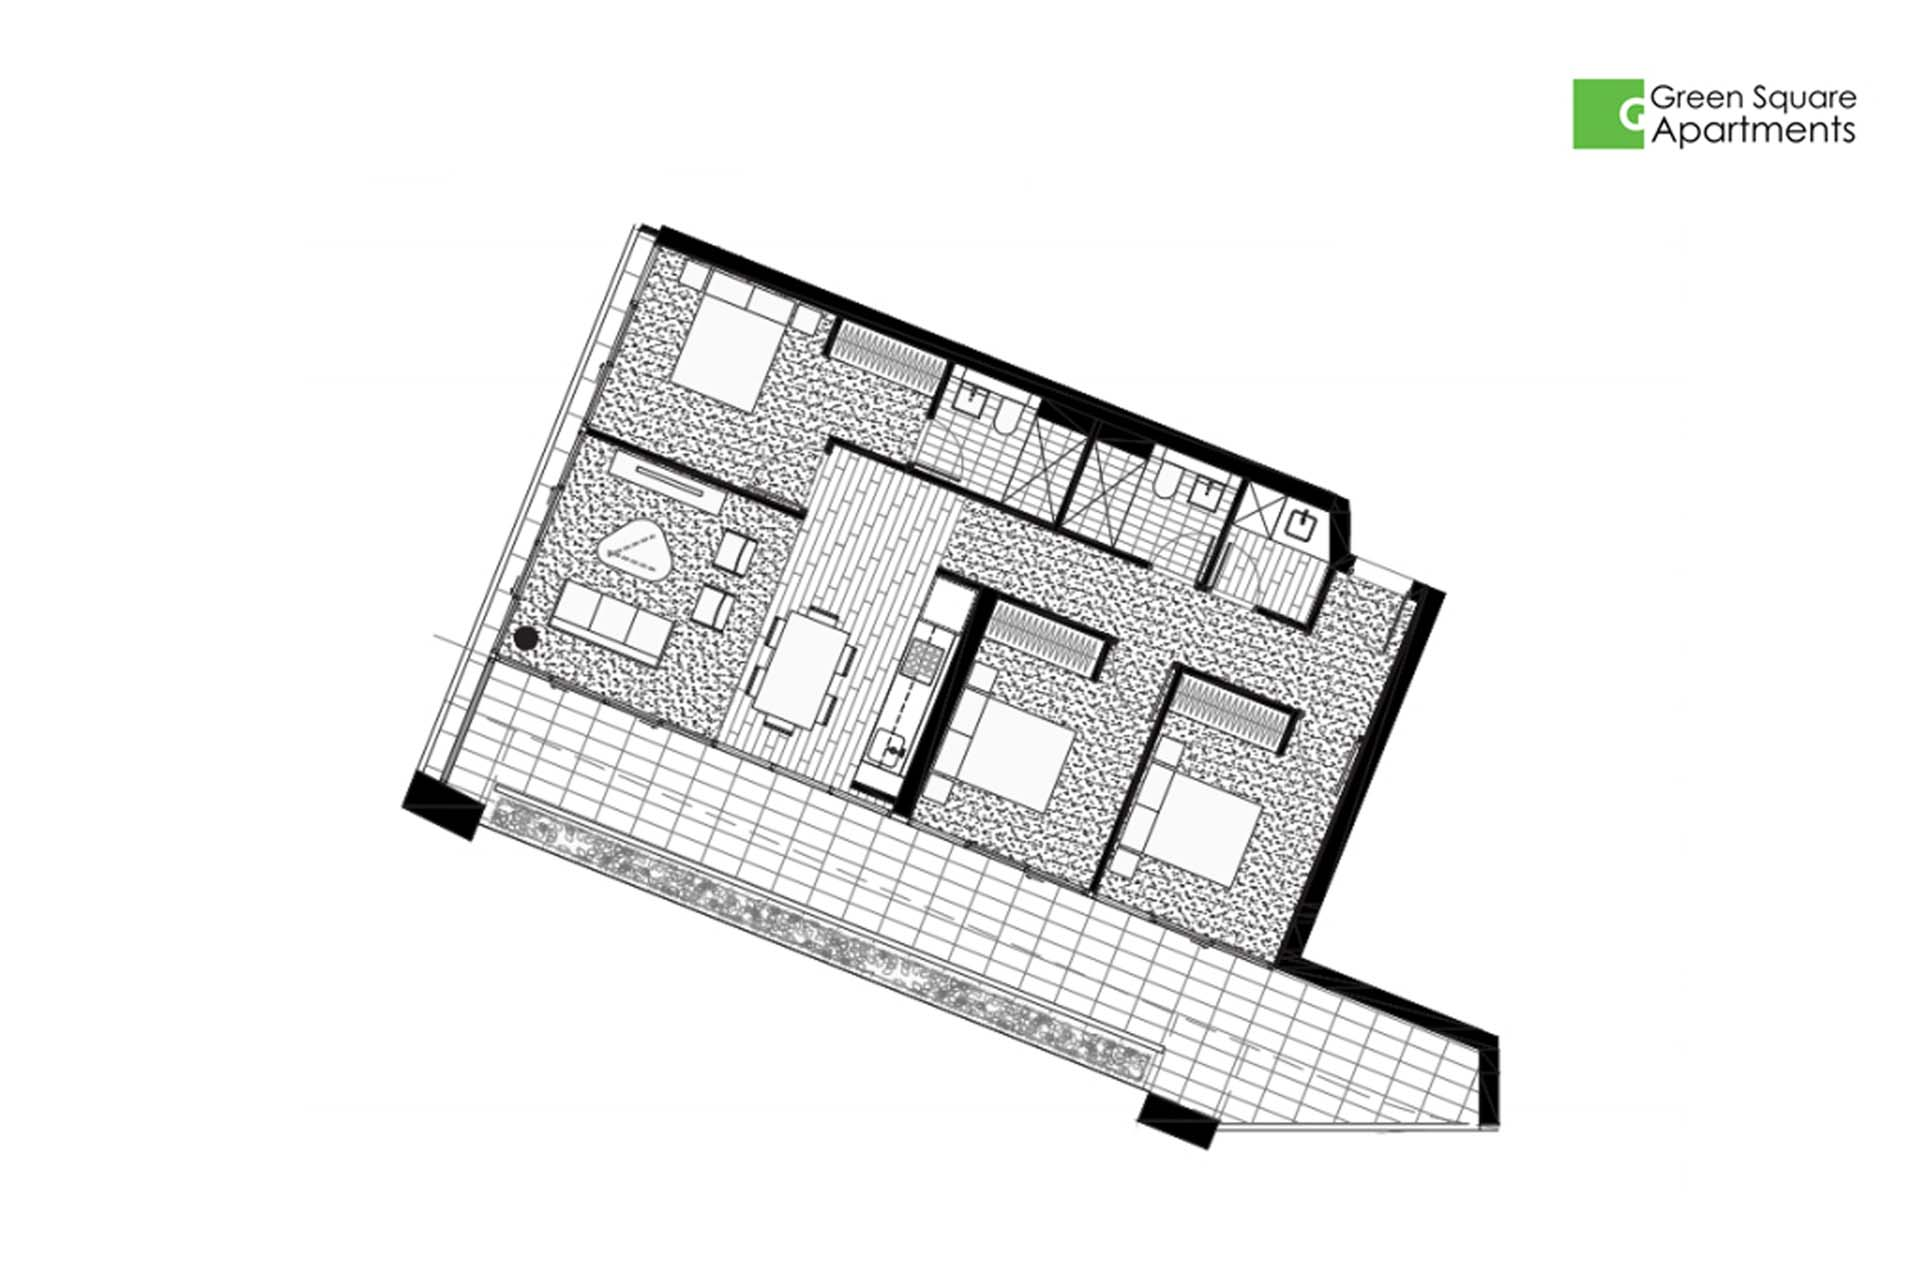 3 bedroom apartment for rent in infinity